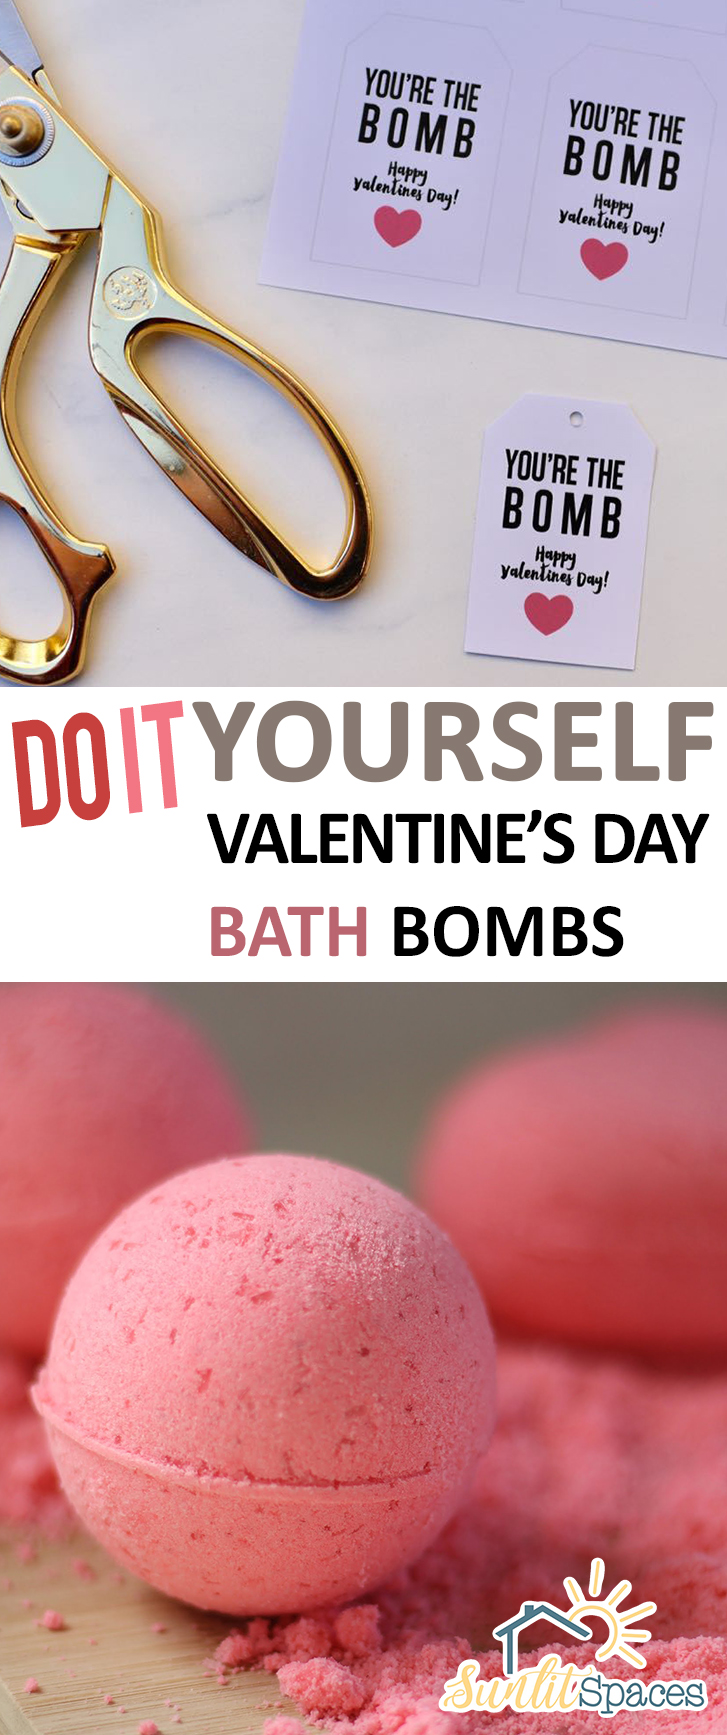 Do it yourself valentines day bath bombs do it yourself valentines day bath bombs december 21 2017 prev1 of 7next solutioingenieria Images